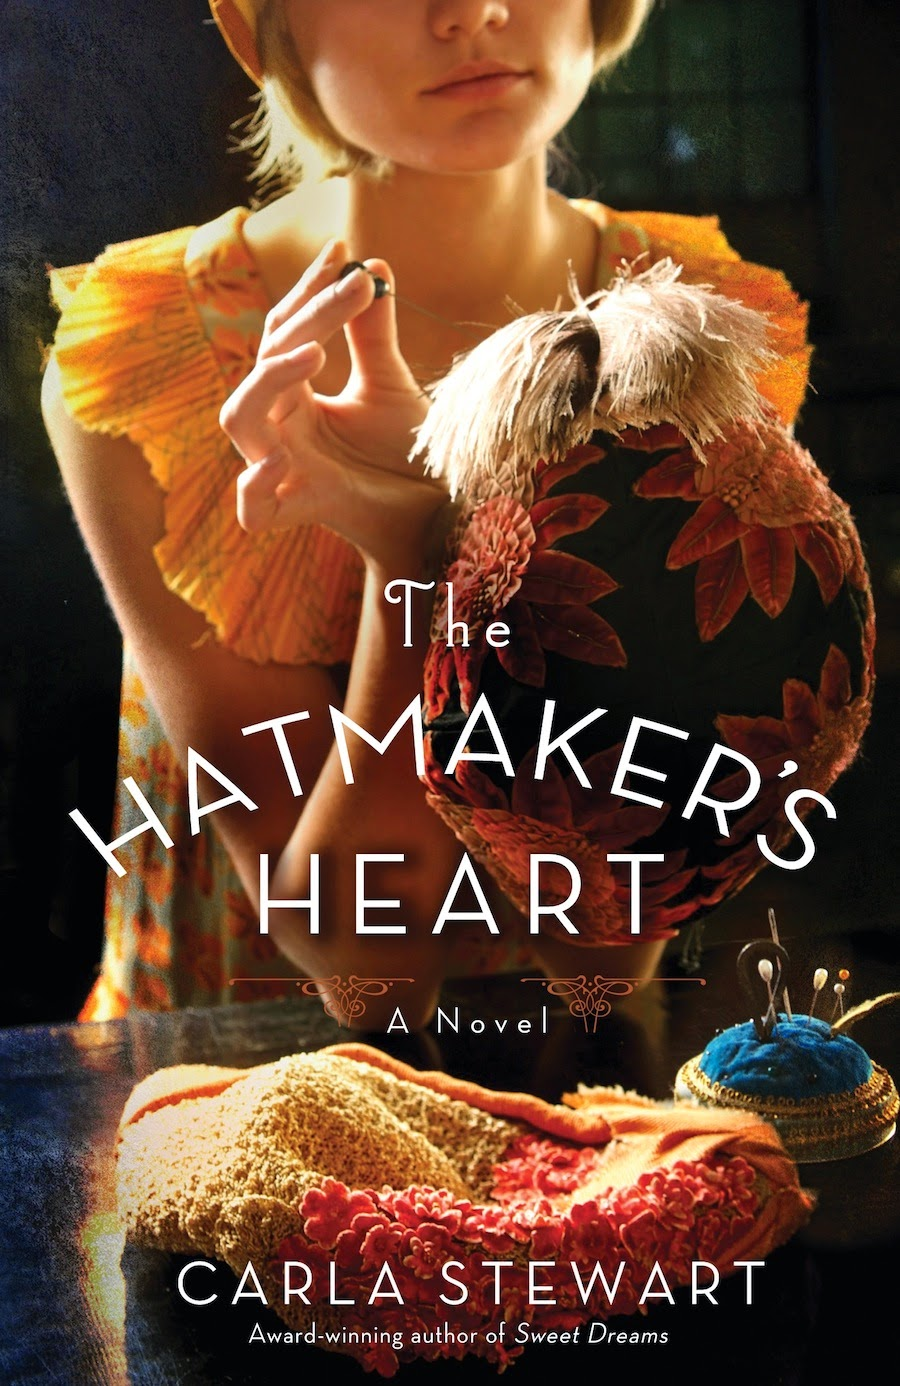 http://www.carlastewart.com/2013/10/17/the-hatmakers-heart/